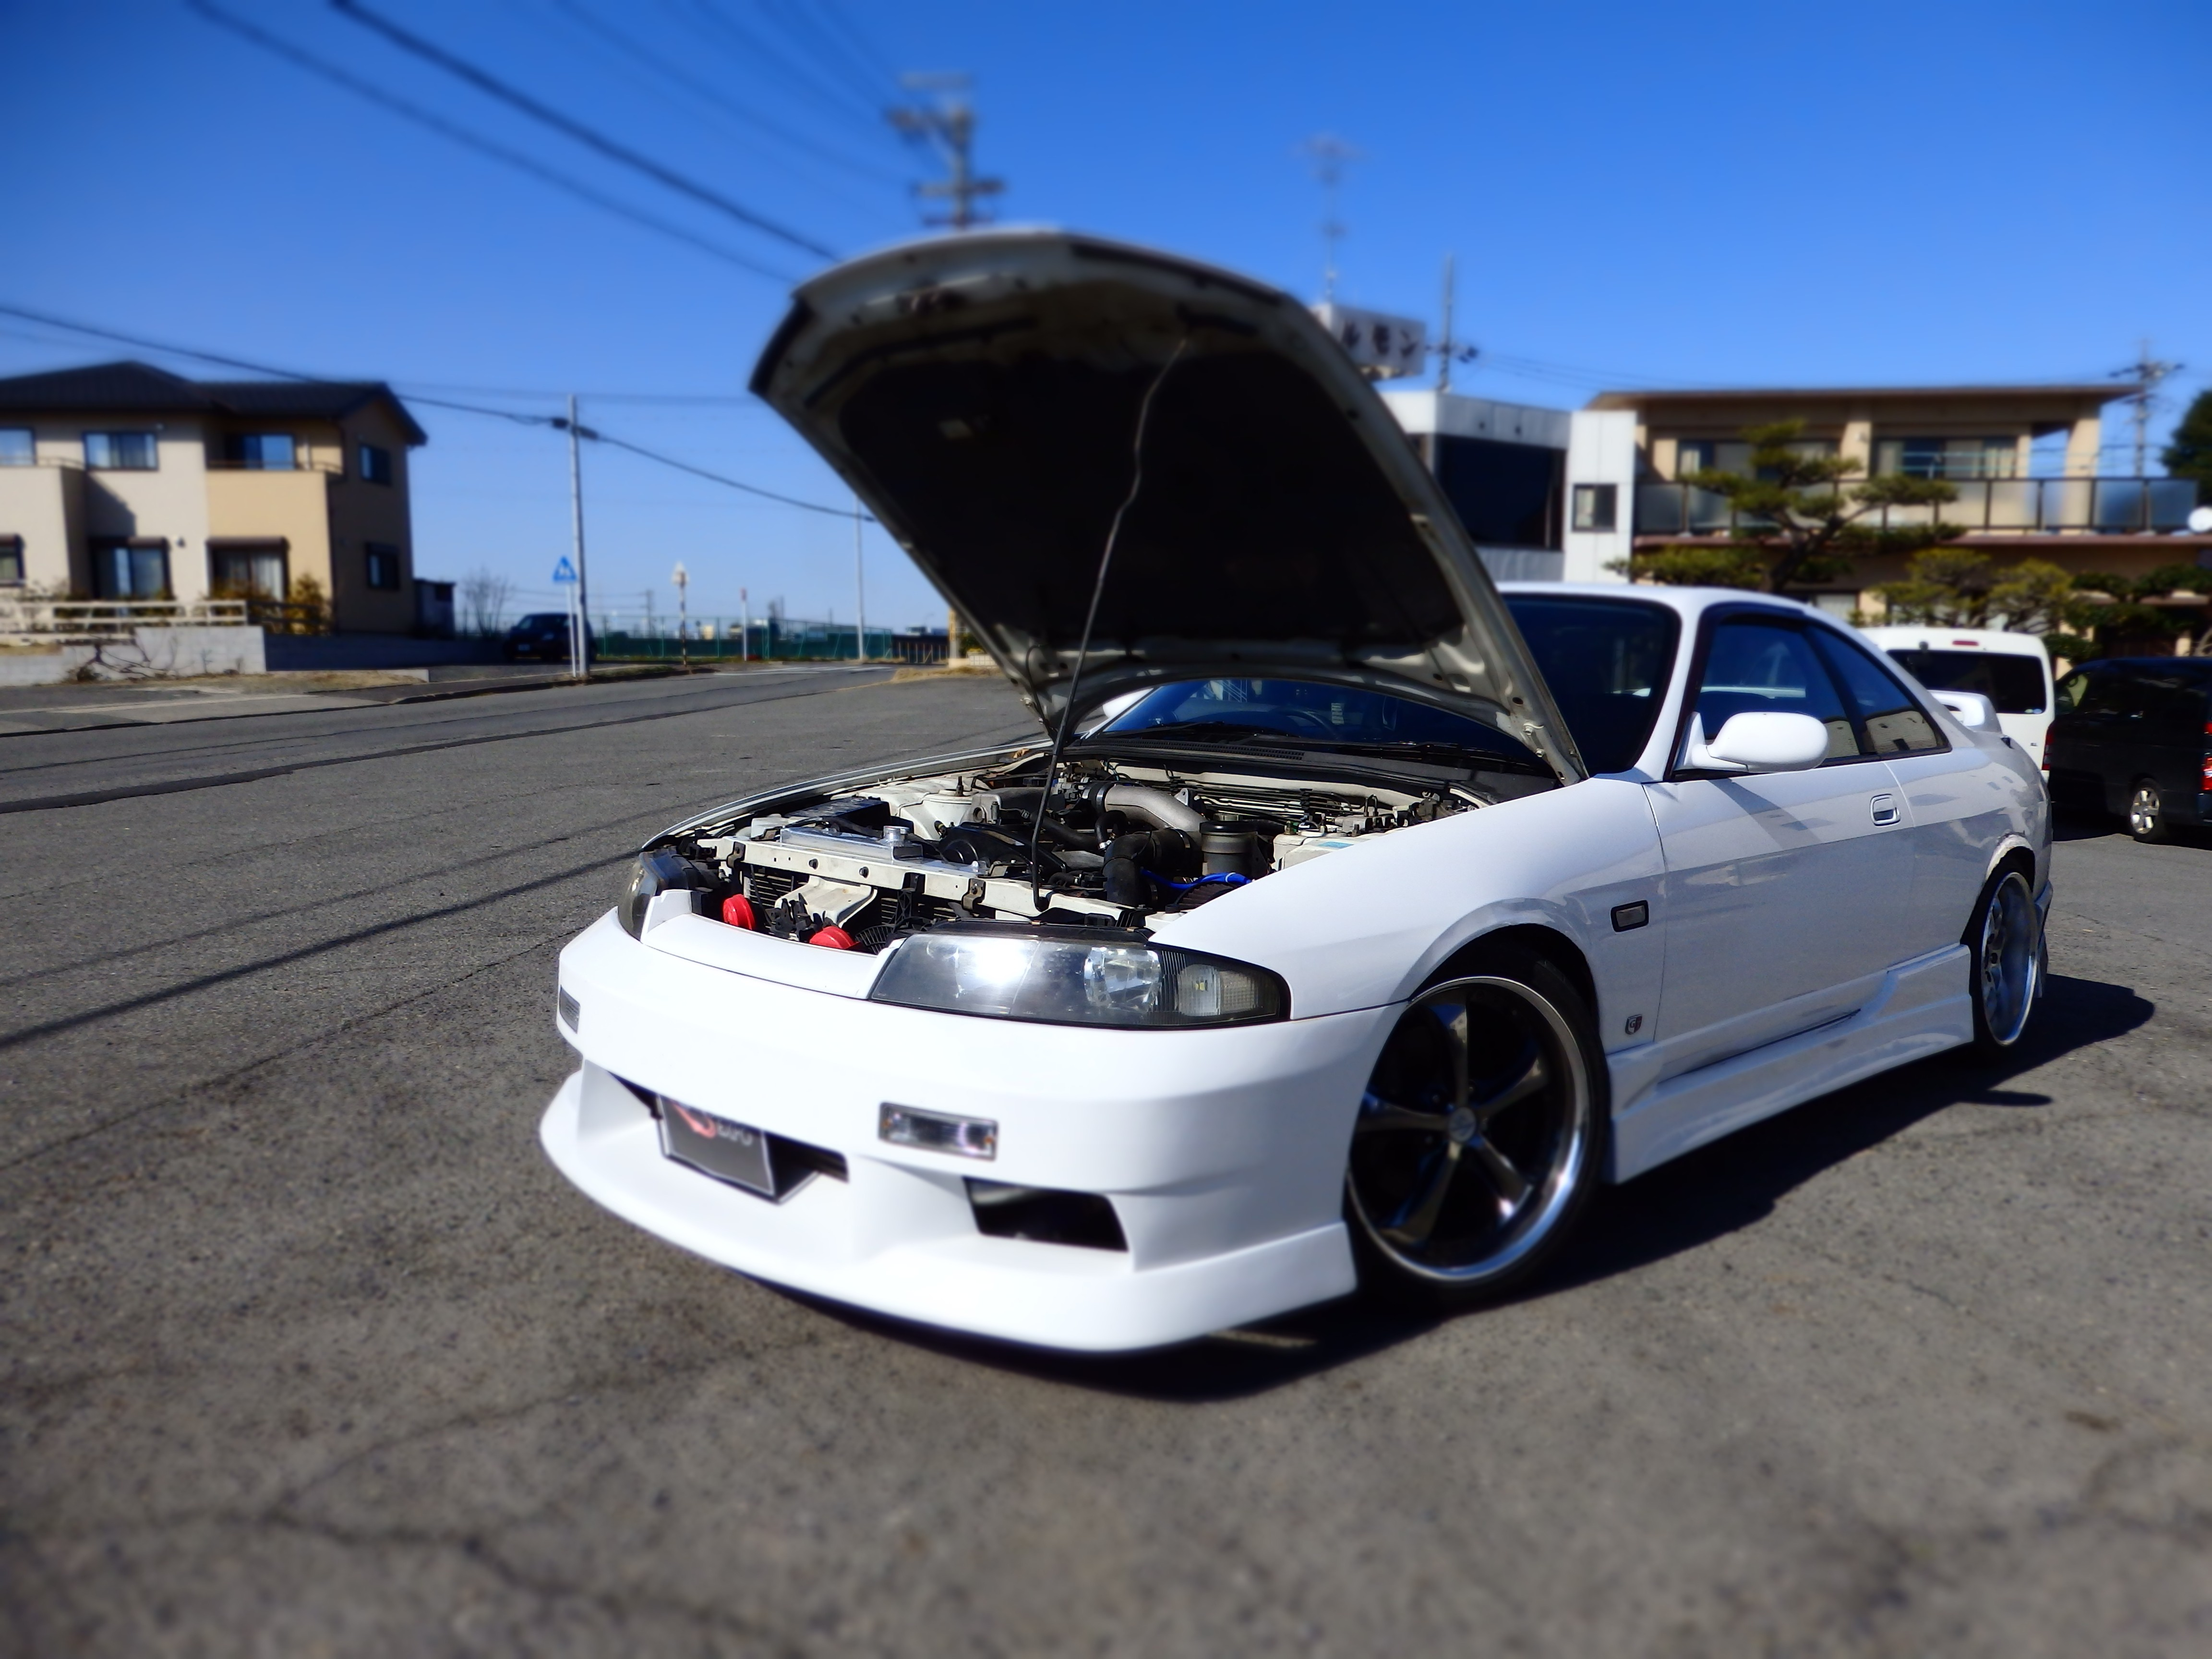 Jdm Cars For Sale >> Skyline R33 sale Japan